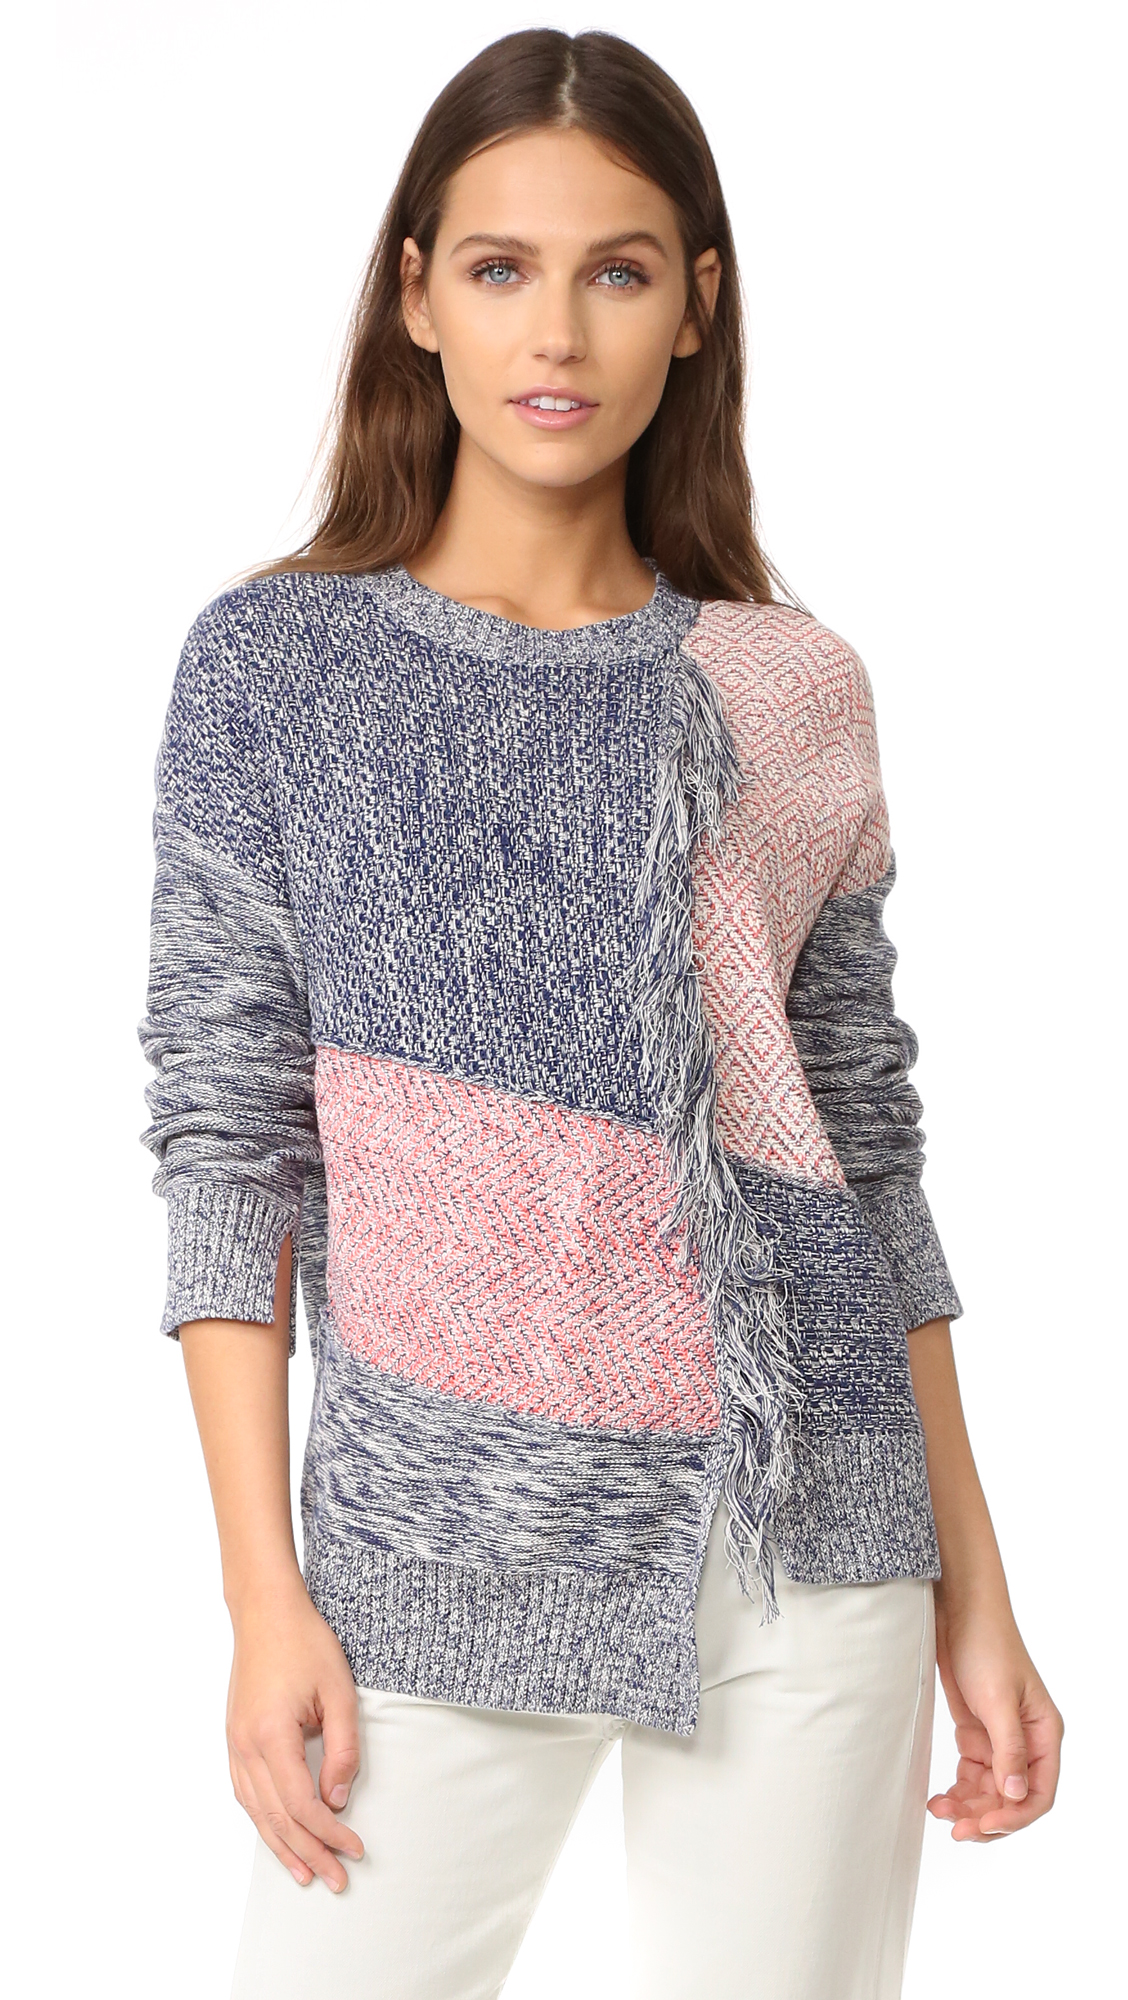 Bcbgmaxazria Fringed Patch Sweater - Multi Combo at Shopbop